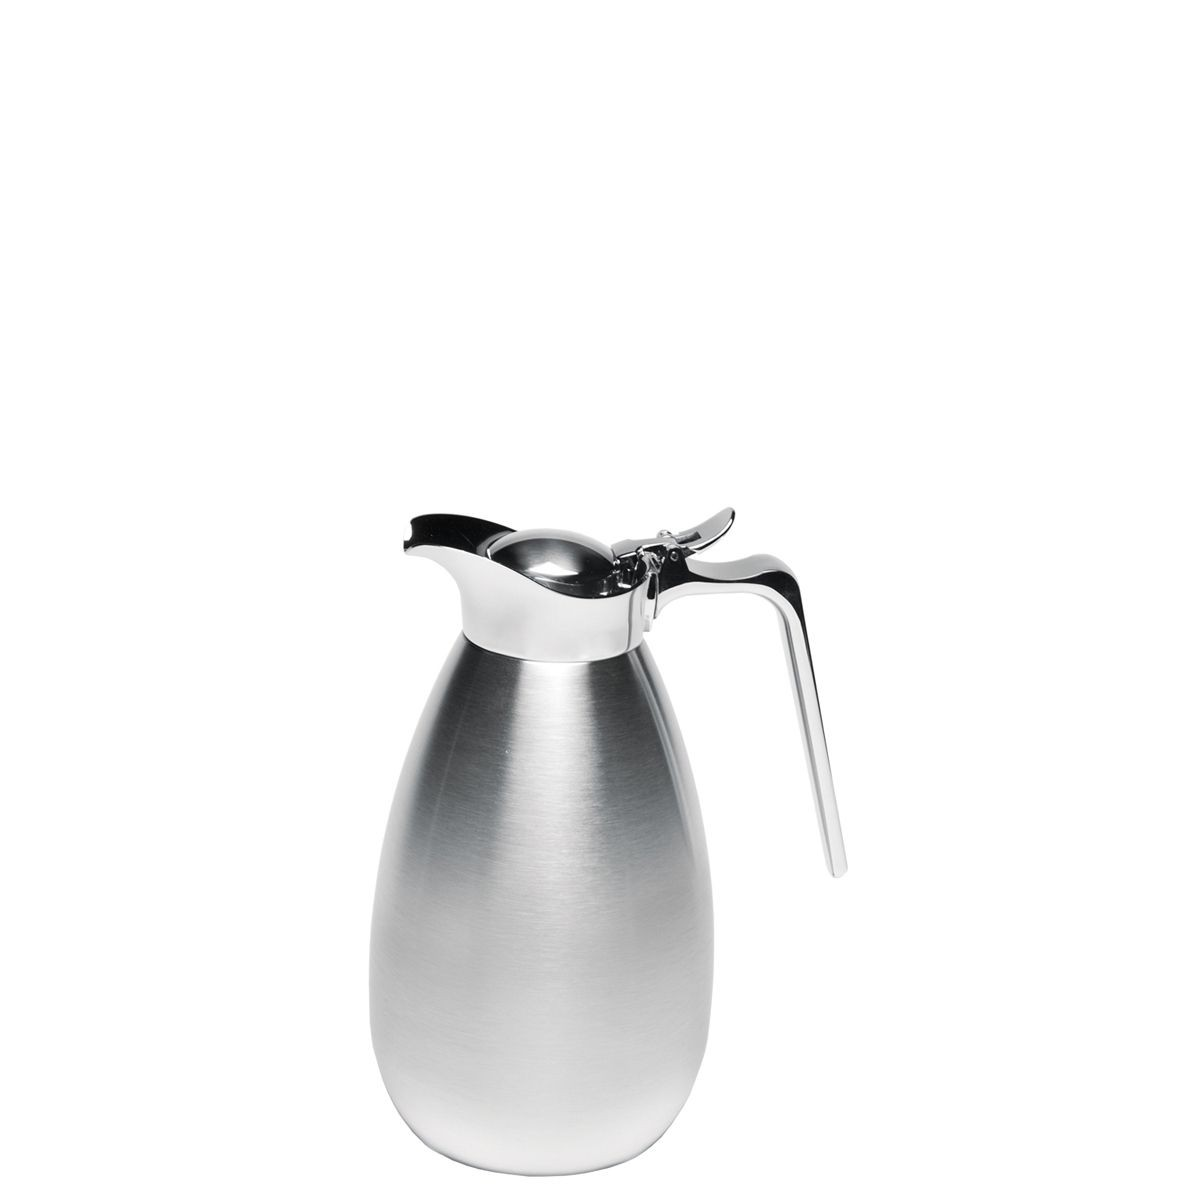 Service Ideas MEVC1000S Elite Touch Brushed Stainless Steel Server, 1 Liter